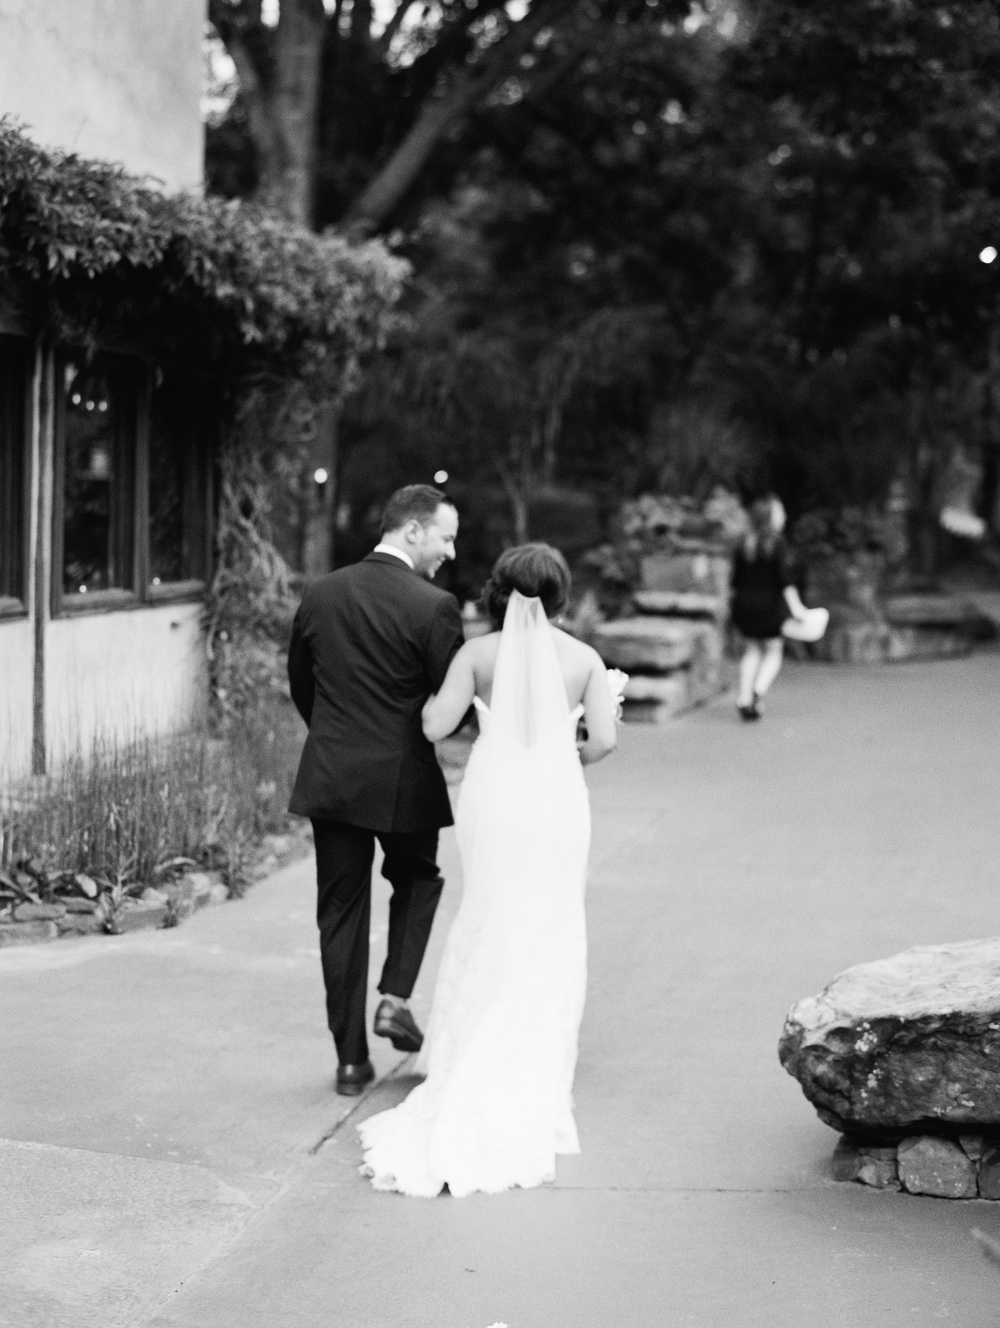 Dana Fernandez Photography Agave Road Agave Estates Houston Texas Wedding Photographer Destination Southwest Film-12.jpg